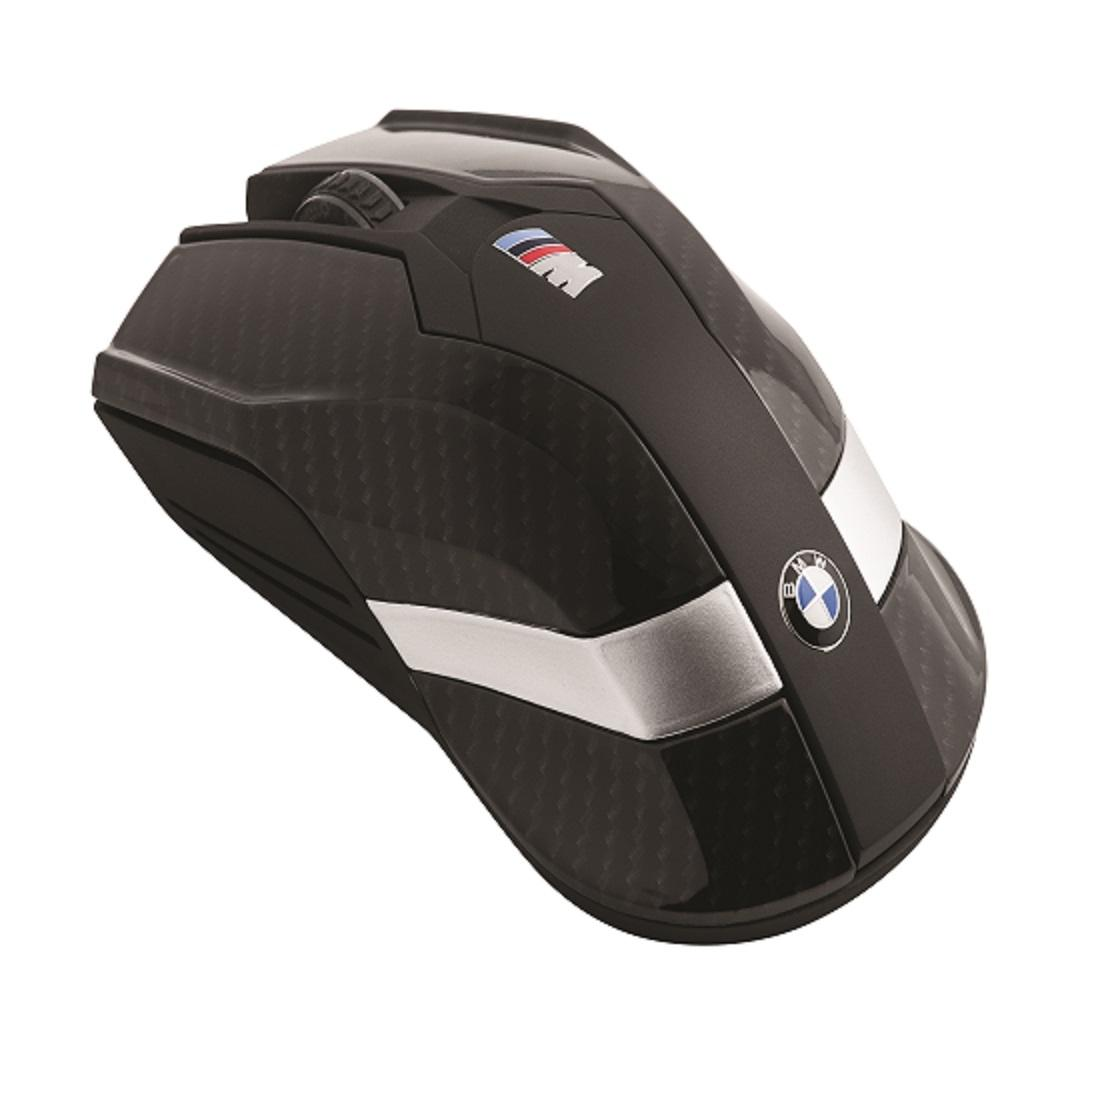 BMW M Wireless Mouse